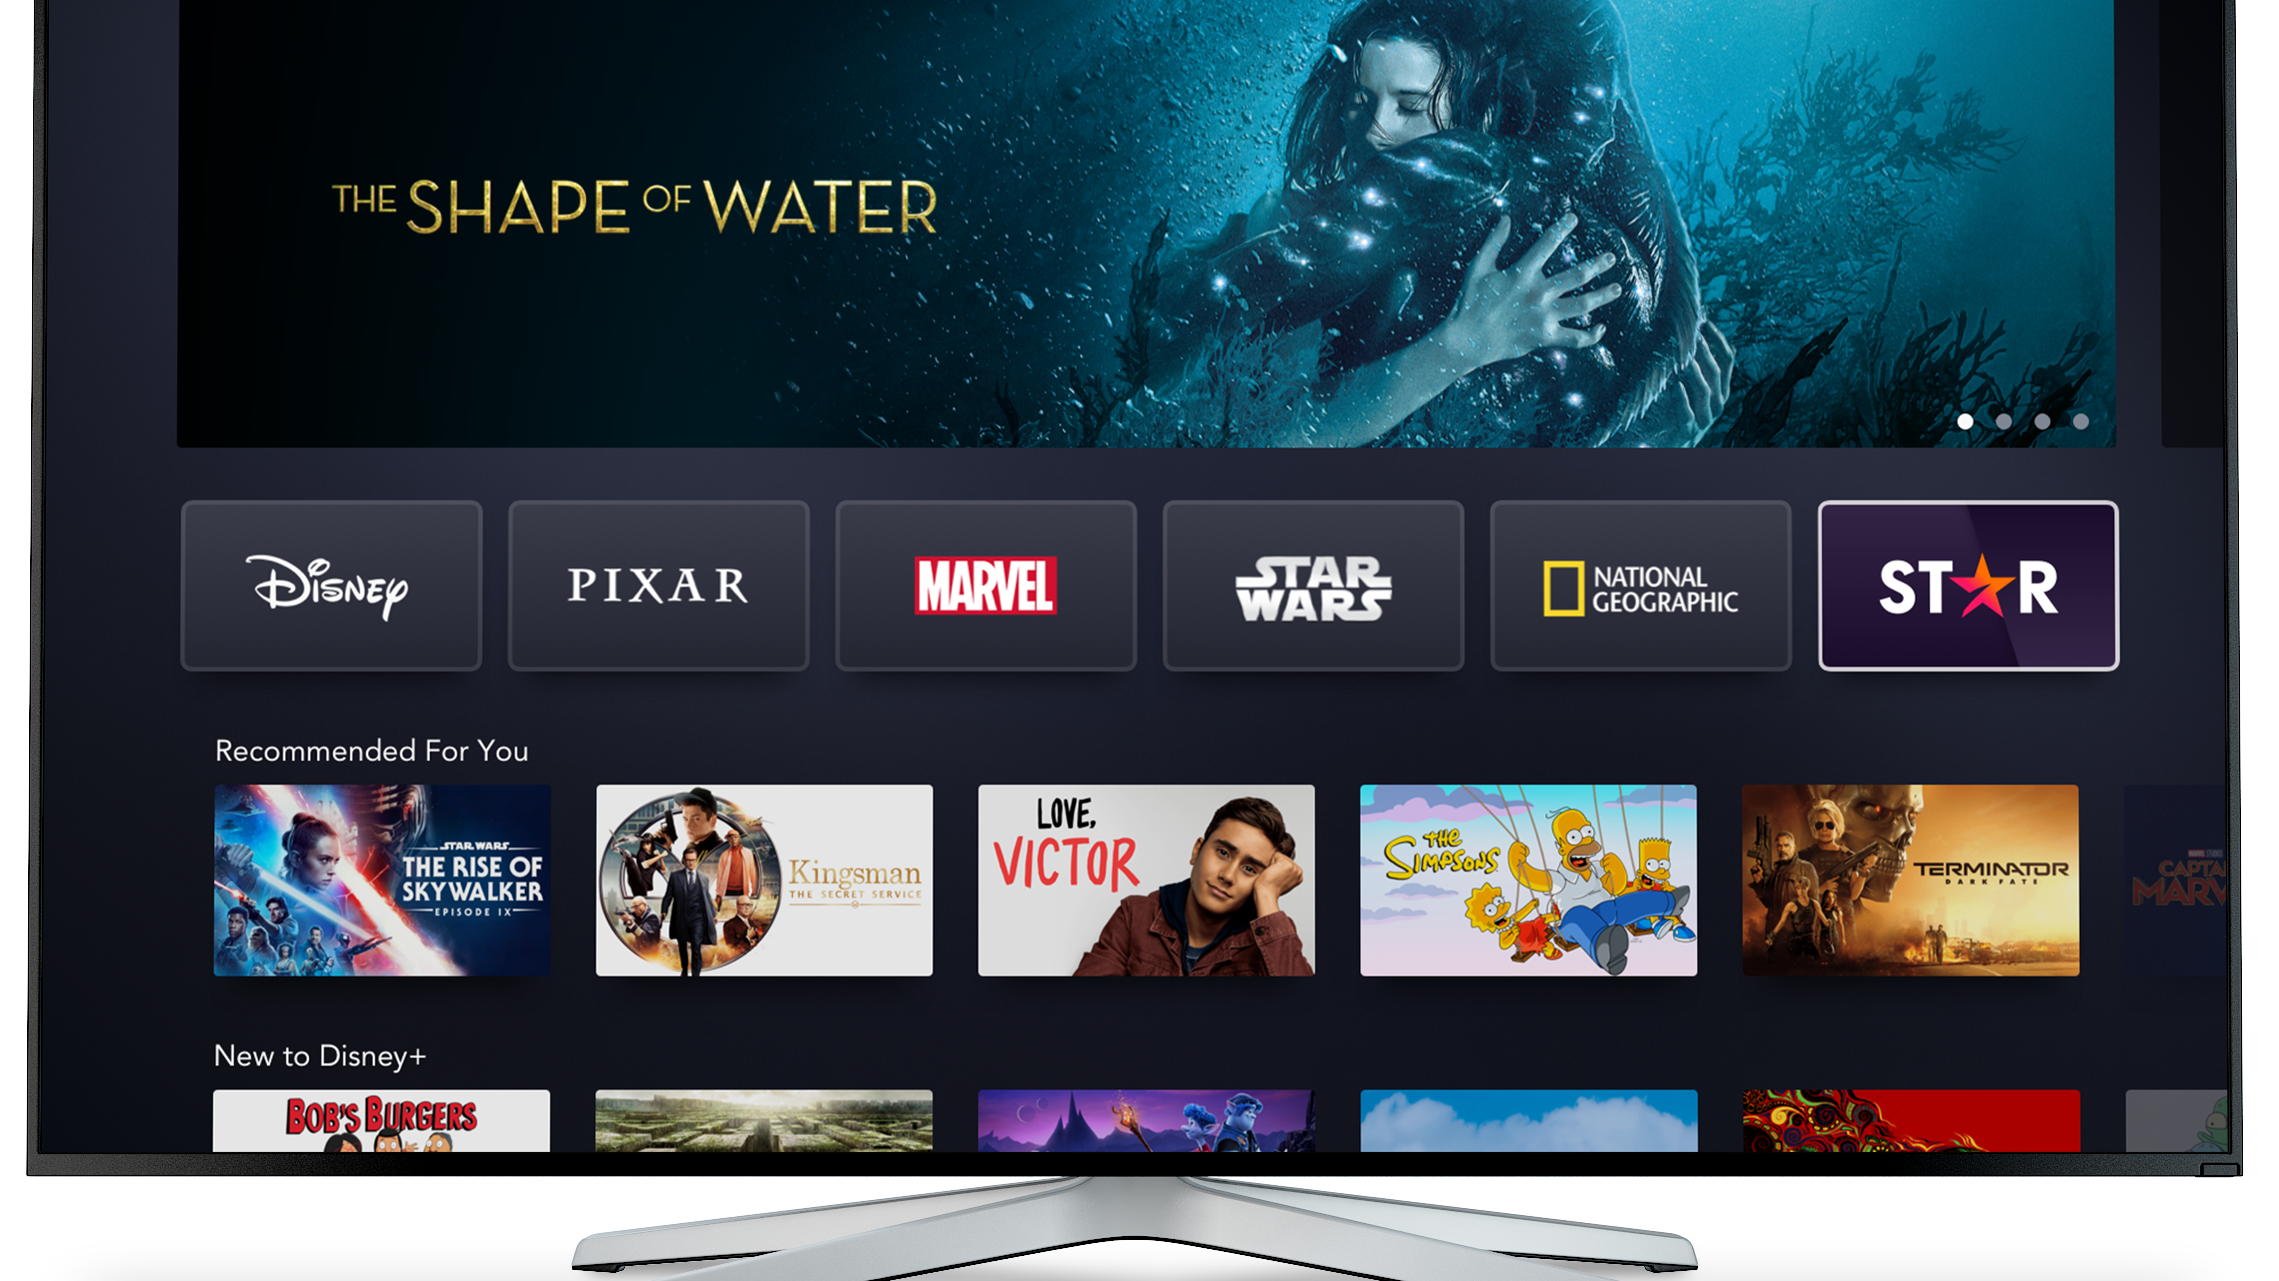 Disney+ with Star UI on Connected TV available in select markets outside the U.S. February 23, 2021. Content may vary by market.